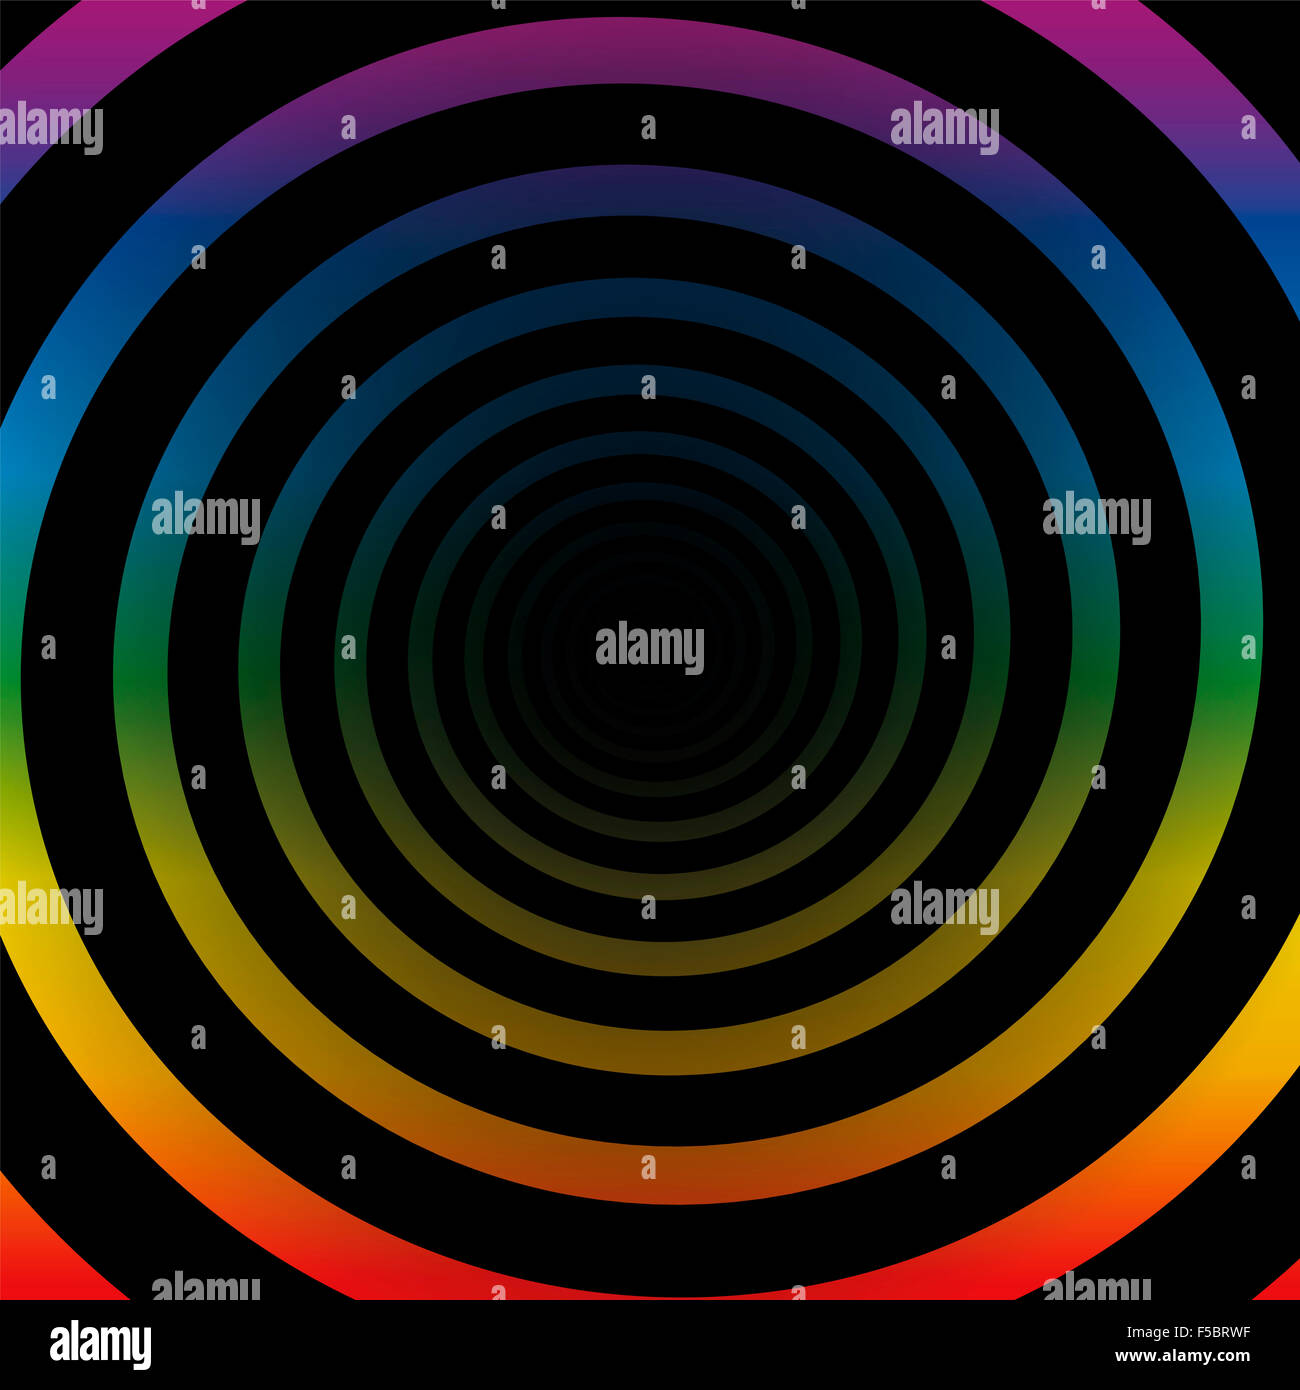 Spiral tunnel, rainbow colors, black gradient center, three-dimensional. - Stock Image